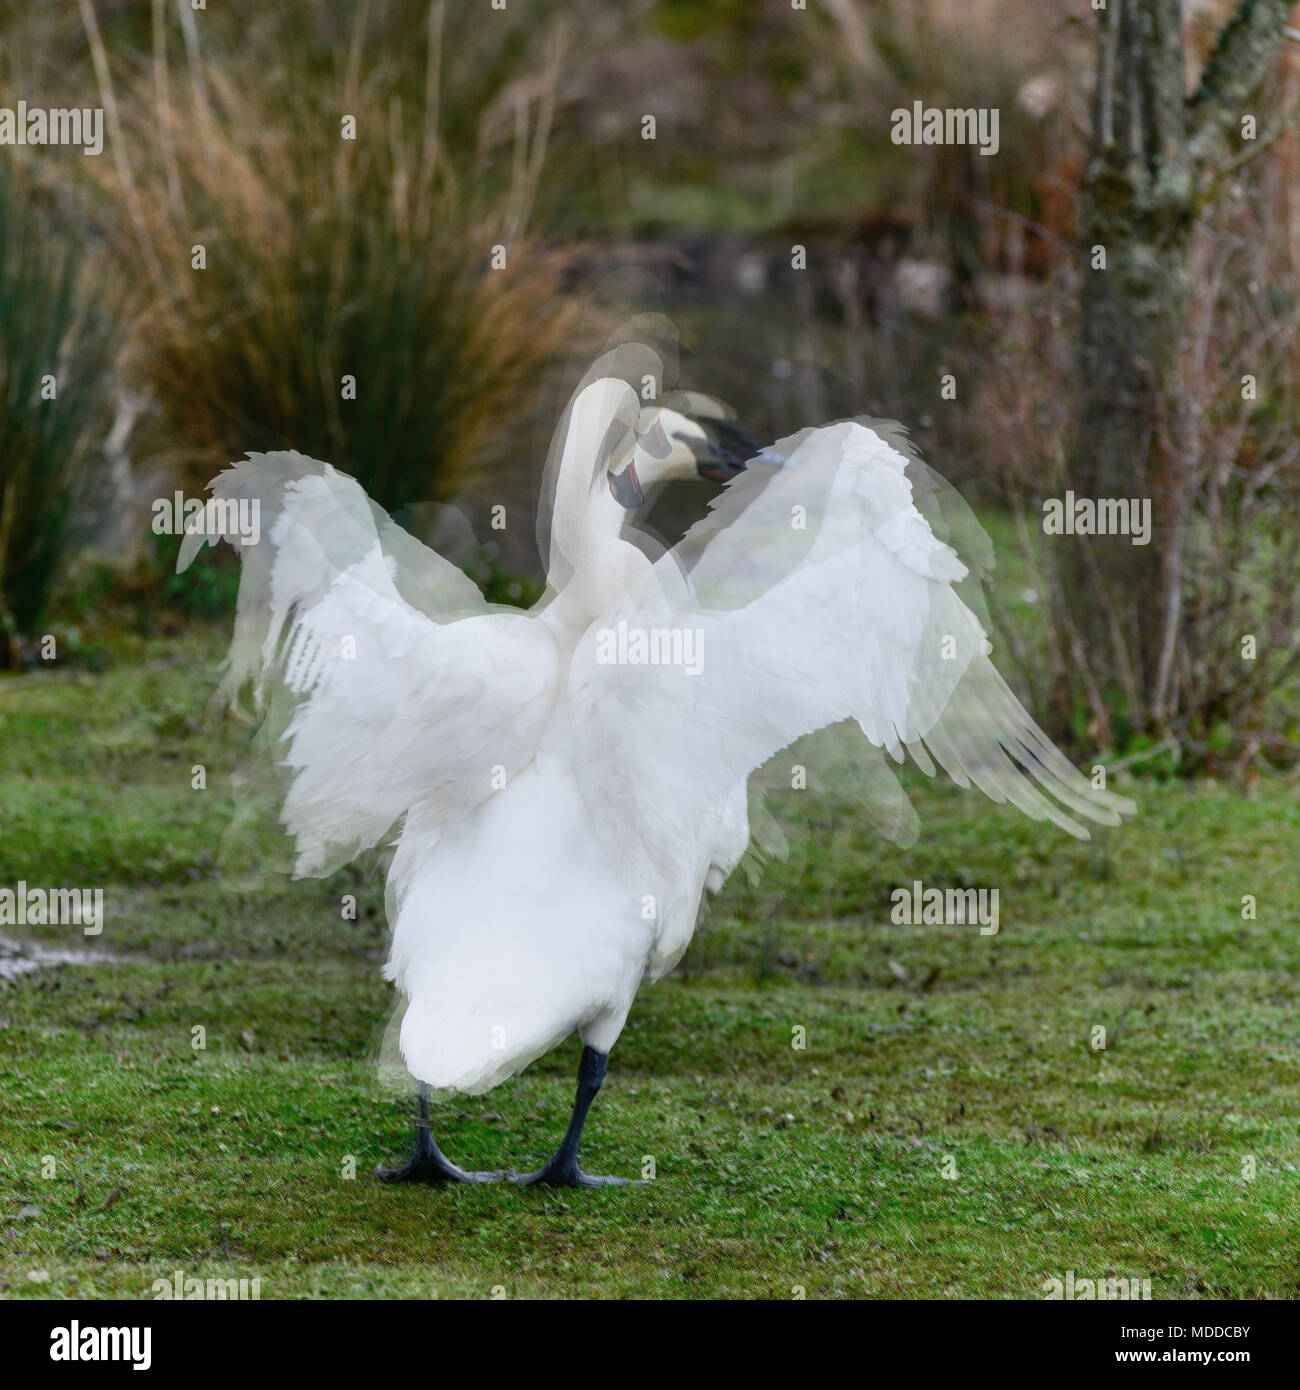 Composite image of six images showing a swan flapping it's wings in one image - Stock Image